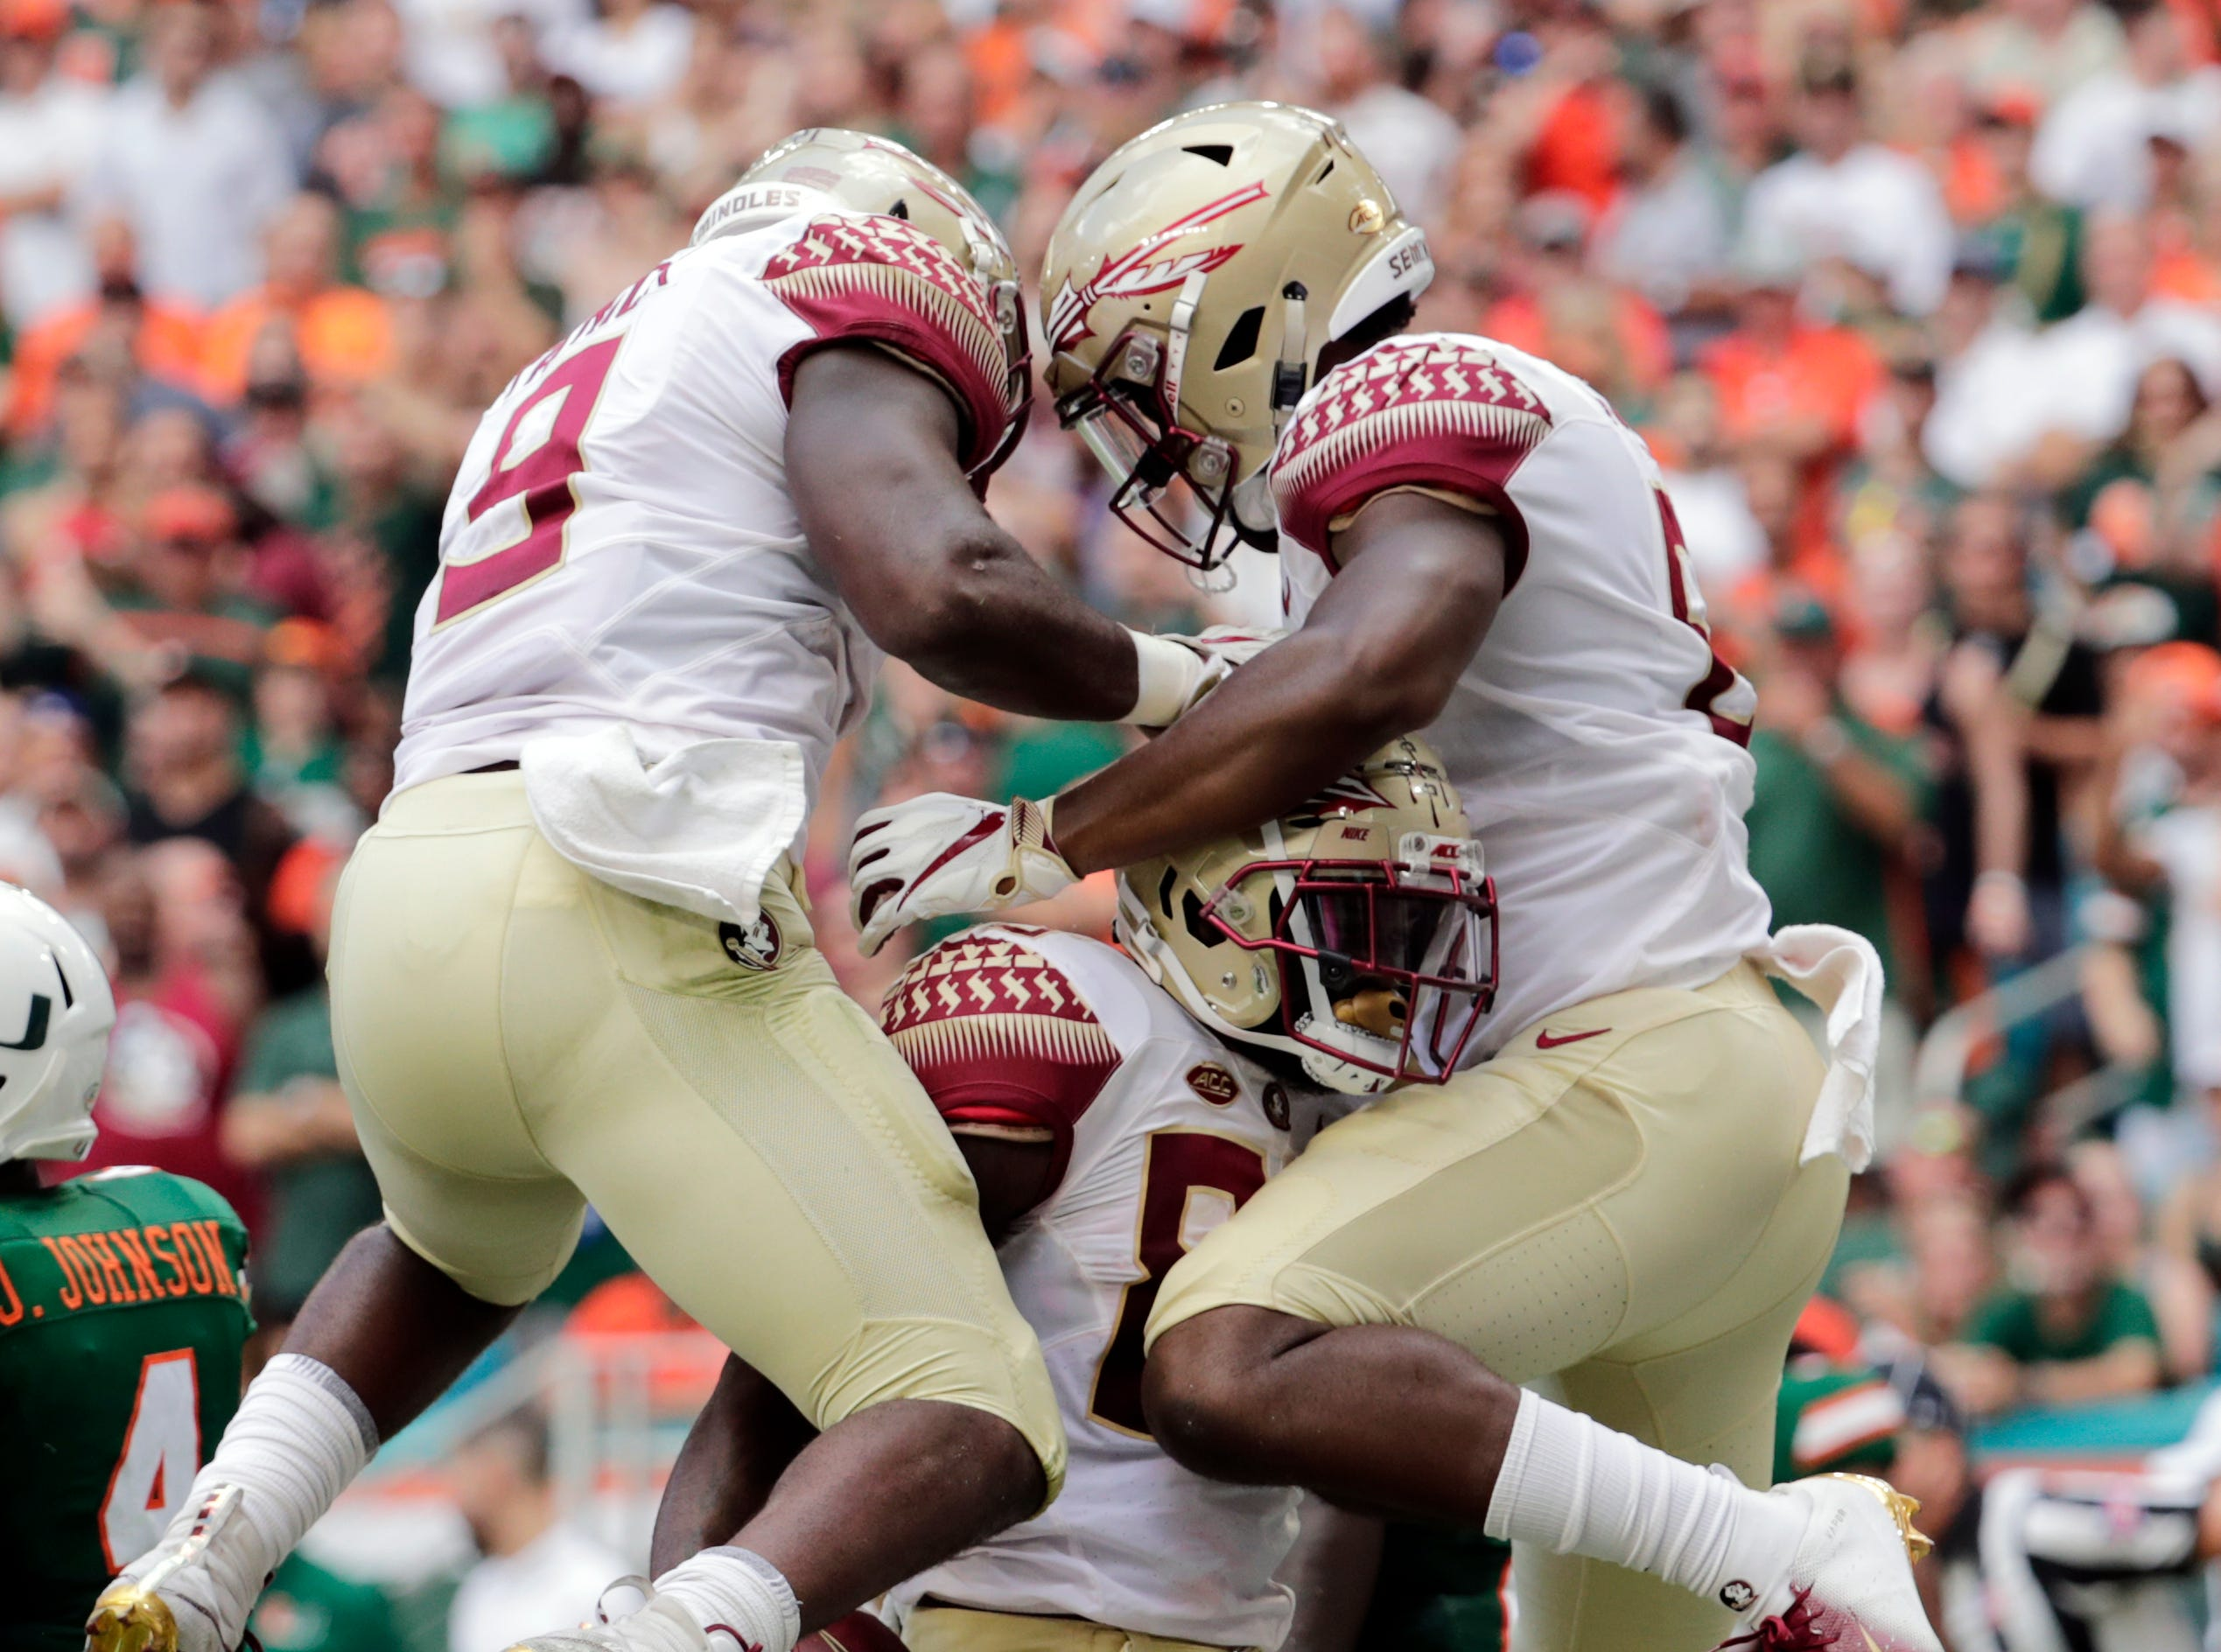 Florida State wide receiver Keith Gavin, center, celebrates with running back Jacques Patrick (9) and tight end Tre' McKitty, right, after scoring a touchdown during the first half of an NCAA college football game against Miami, Saturday, Oct. 6, 2018, in Miami Gardens, Fla. (AP Photo/Lynne Sladky)